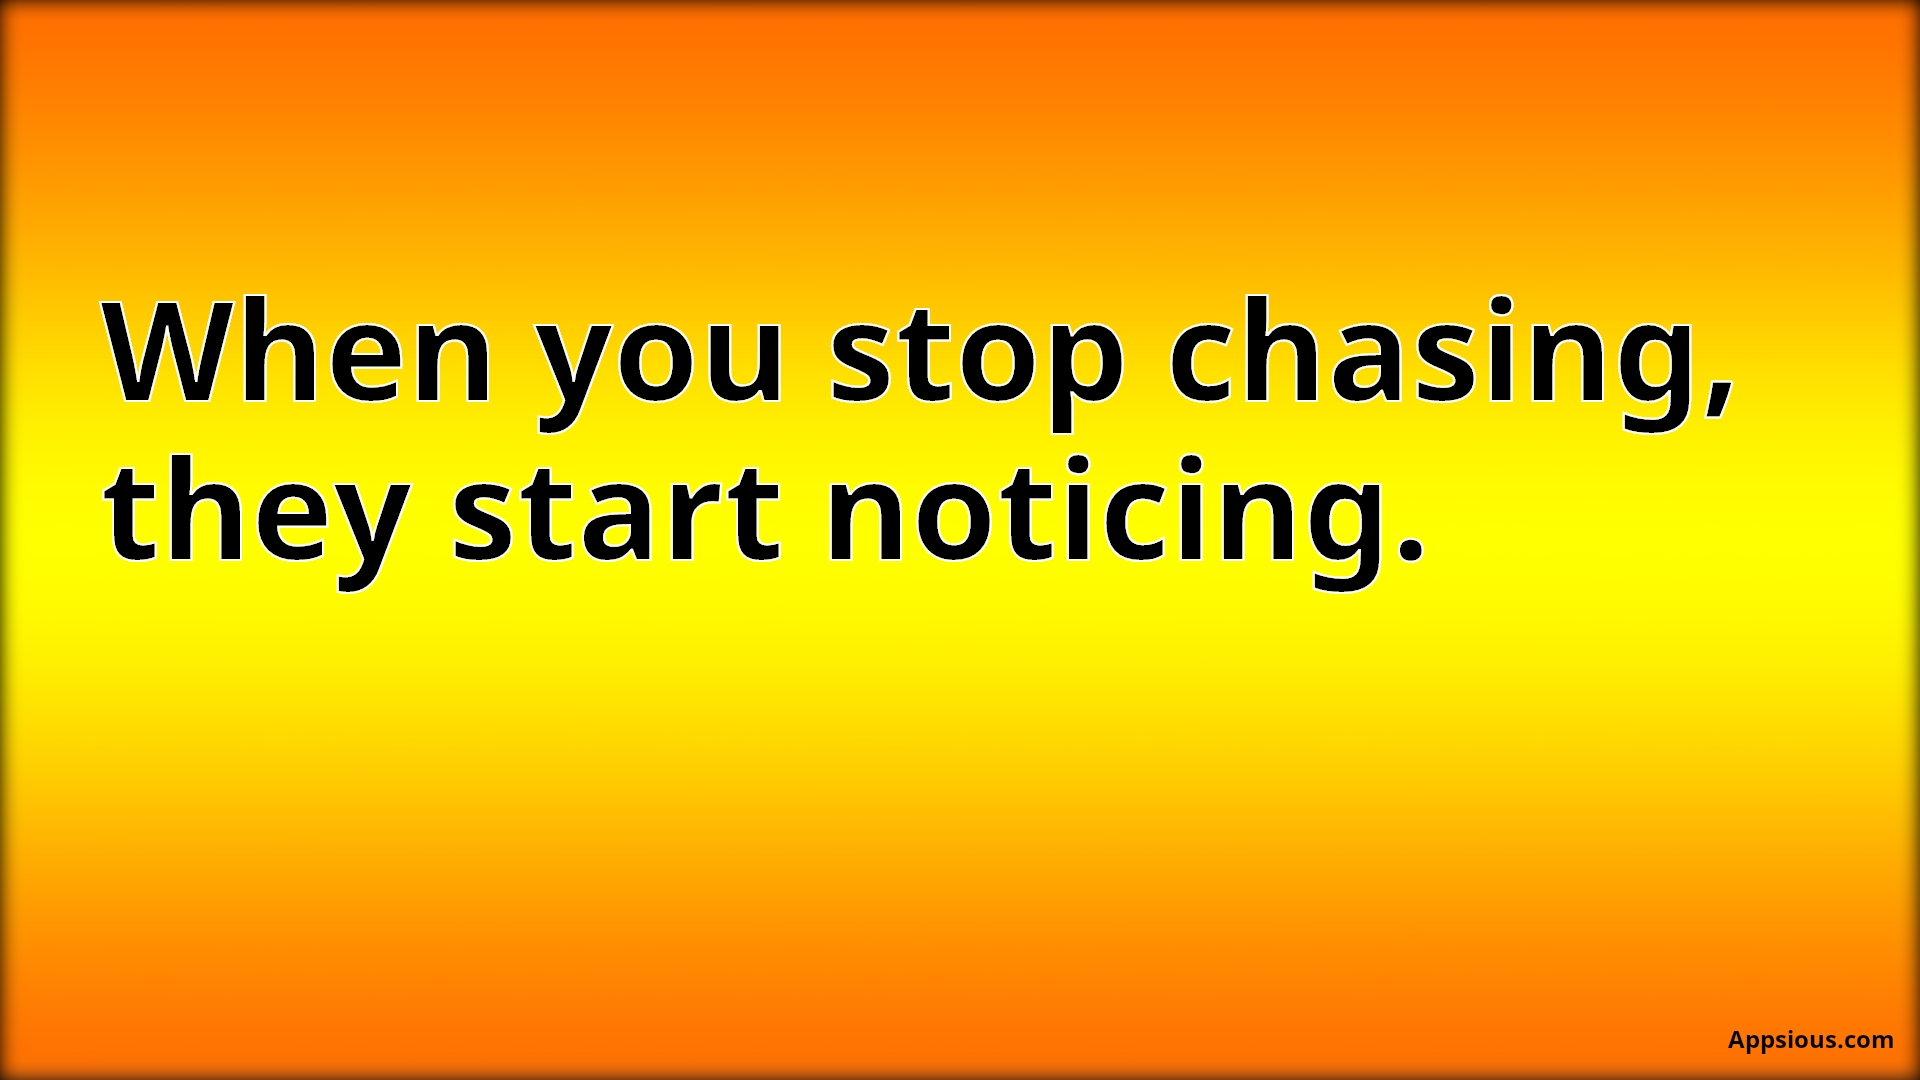 When you stop chasing, they start noticing.